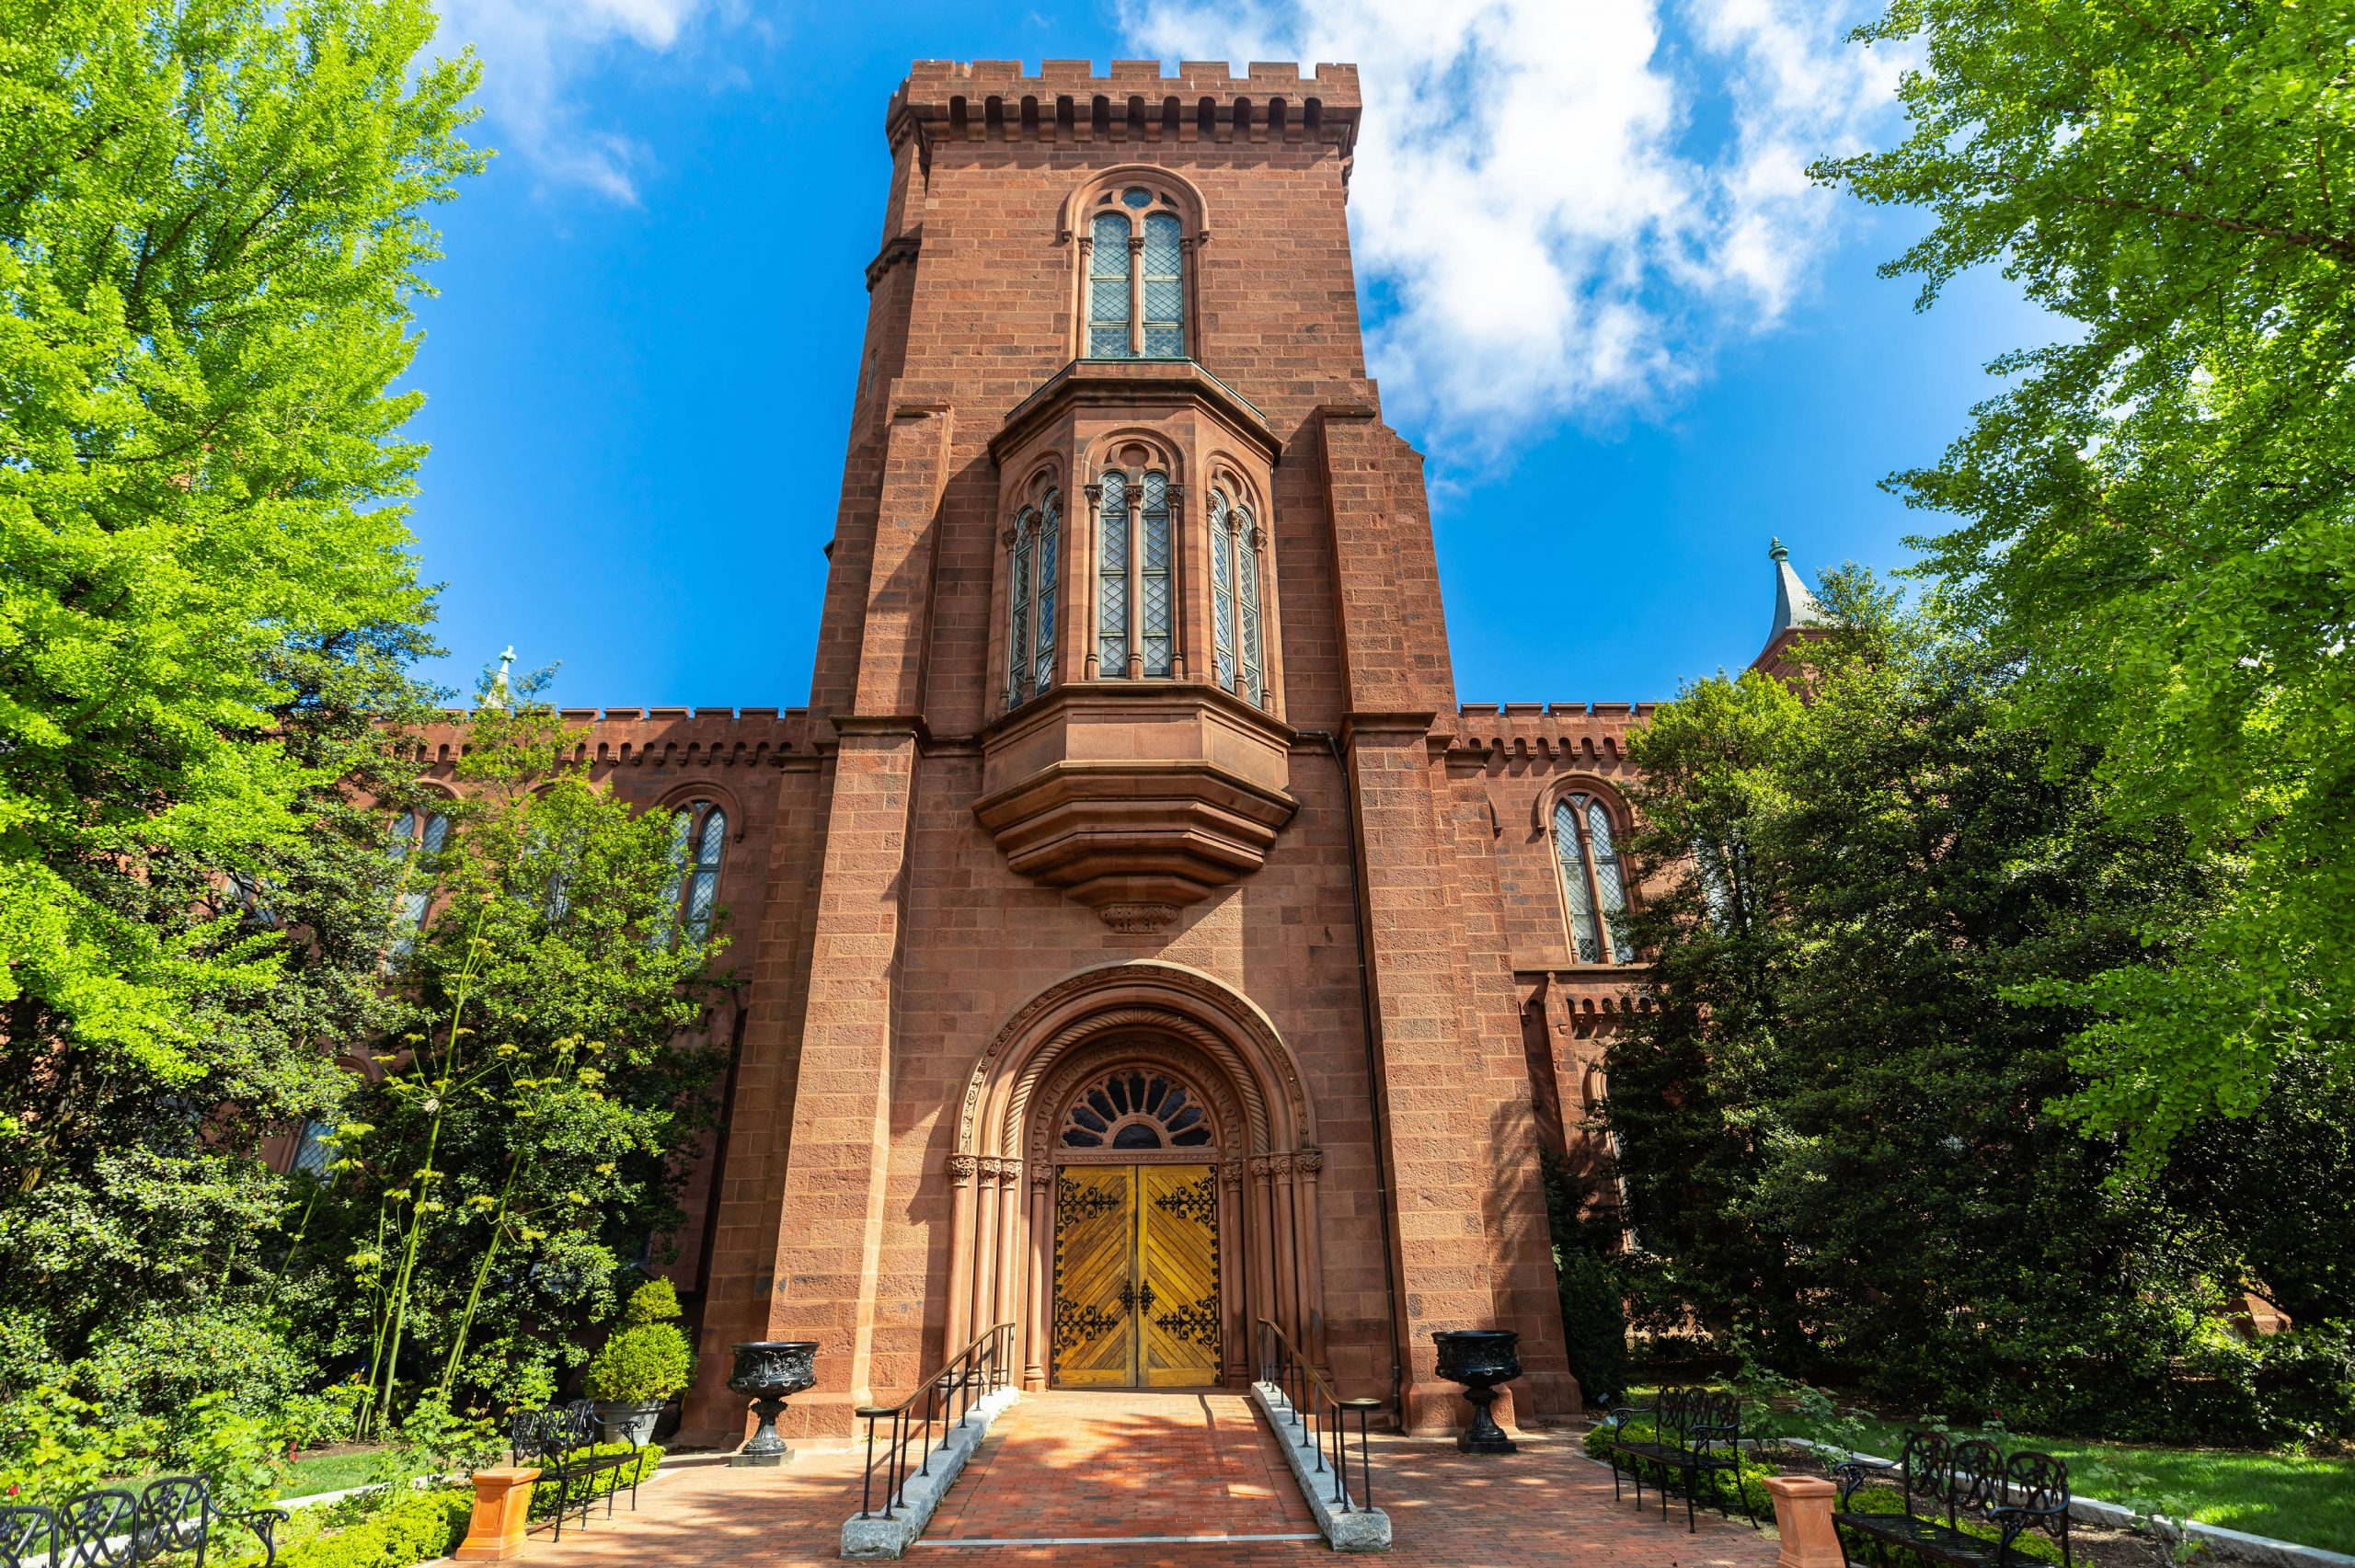 The Smithsonian Offices in Washington DC Photographed by Luxury Travel Writer Annie Fairfax